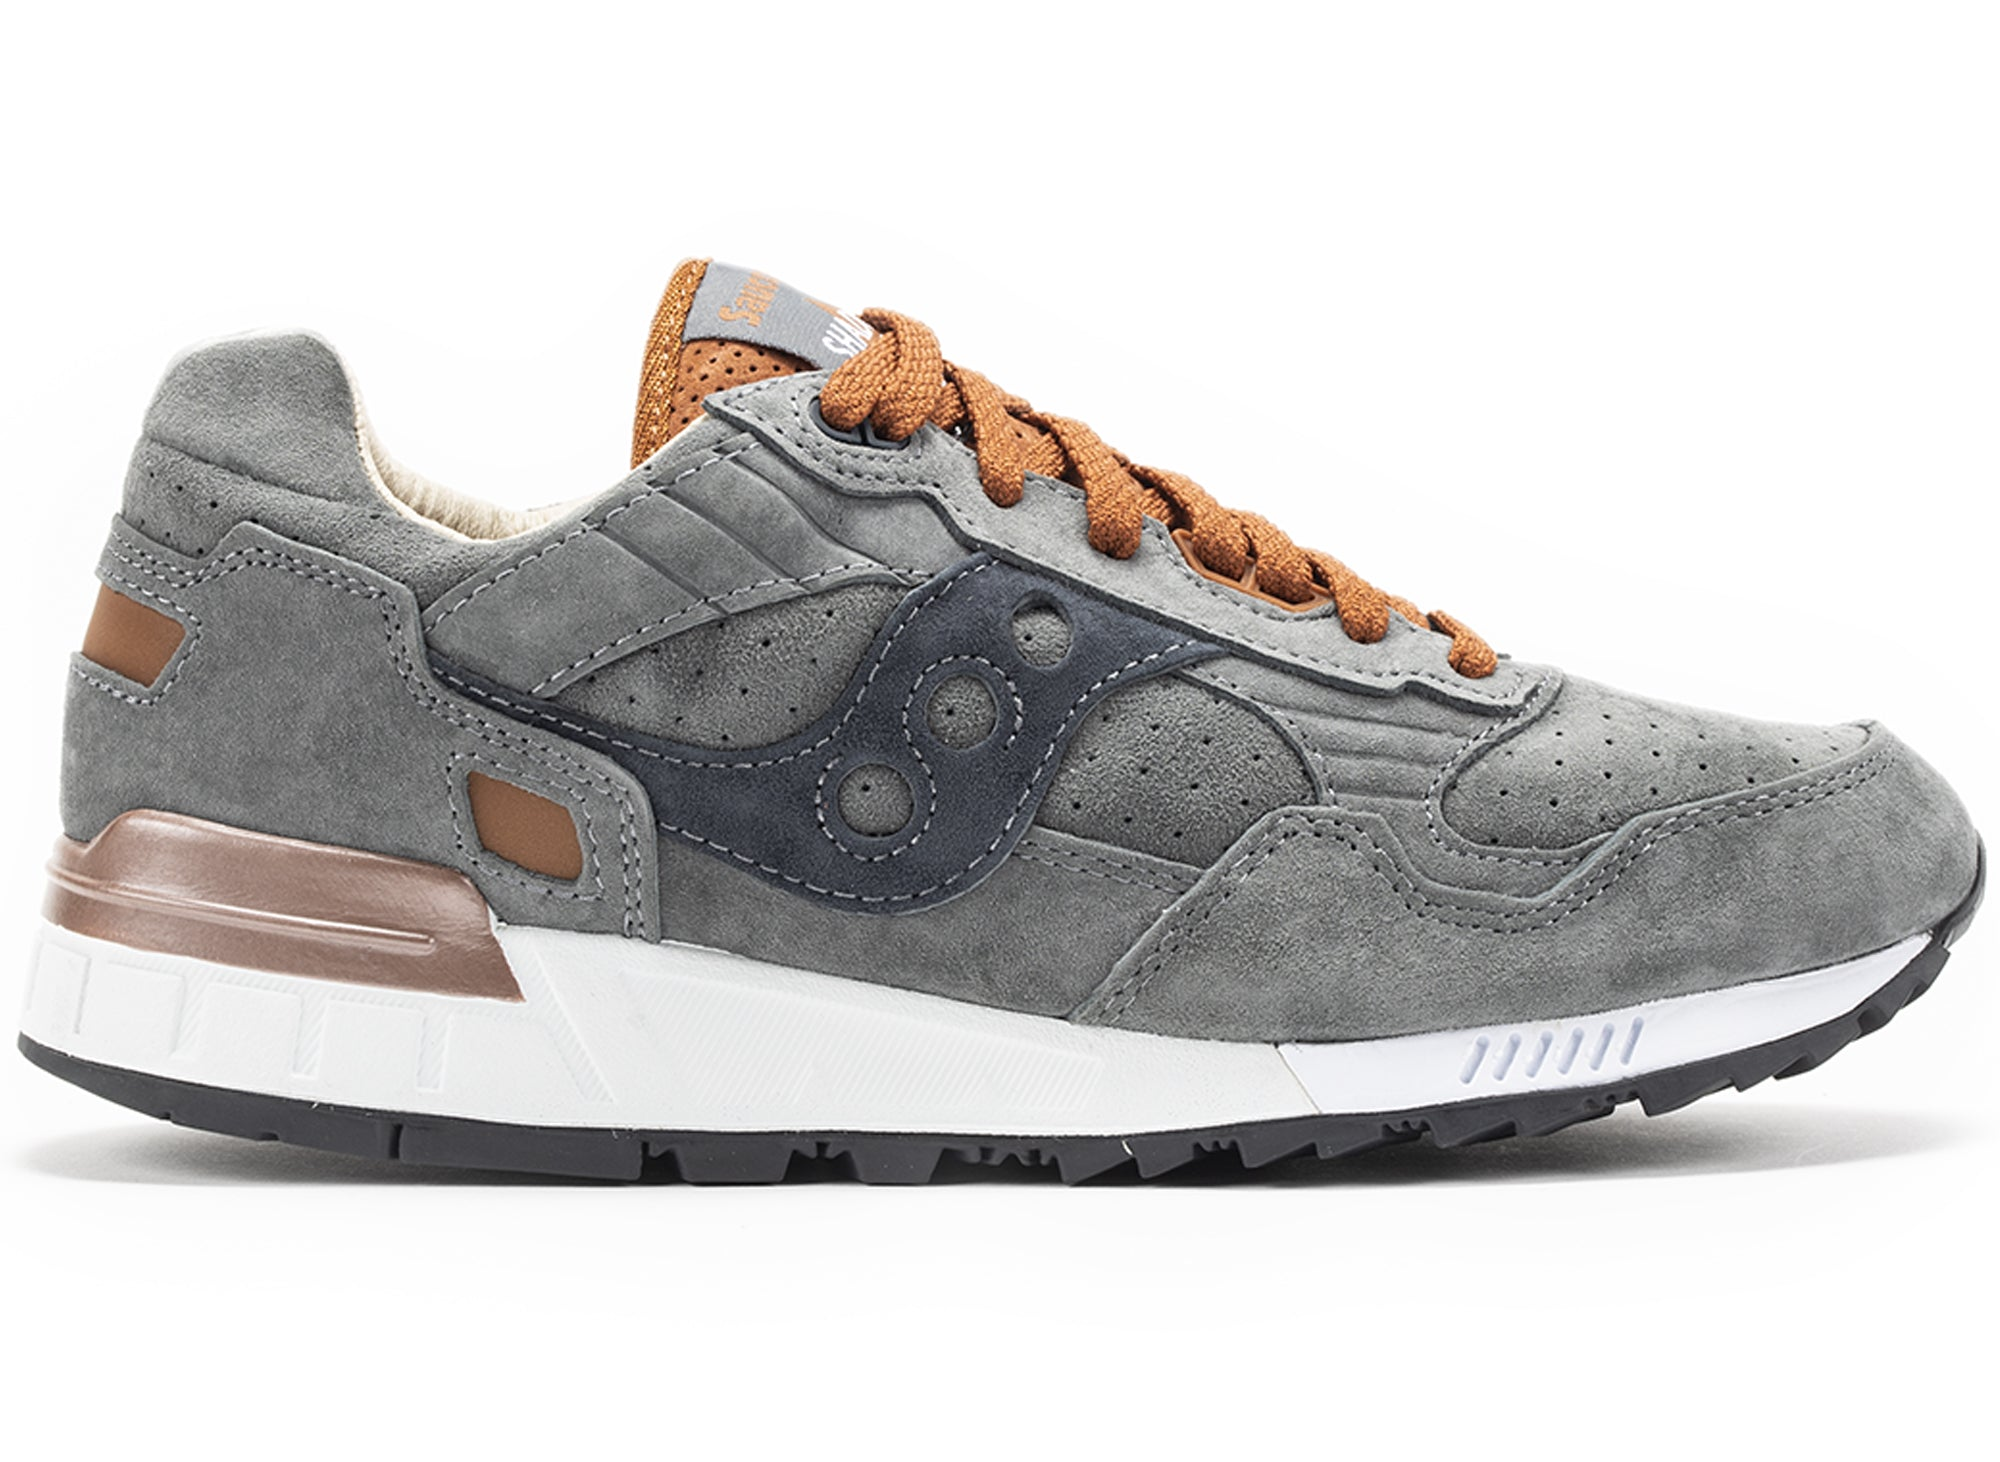 Saucony 5000 Weathered Luxury